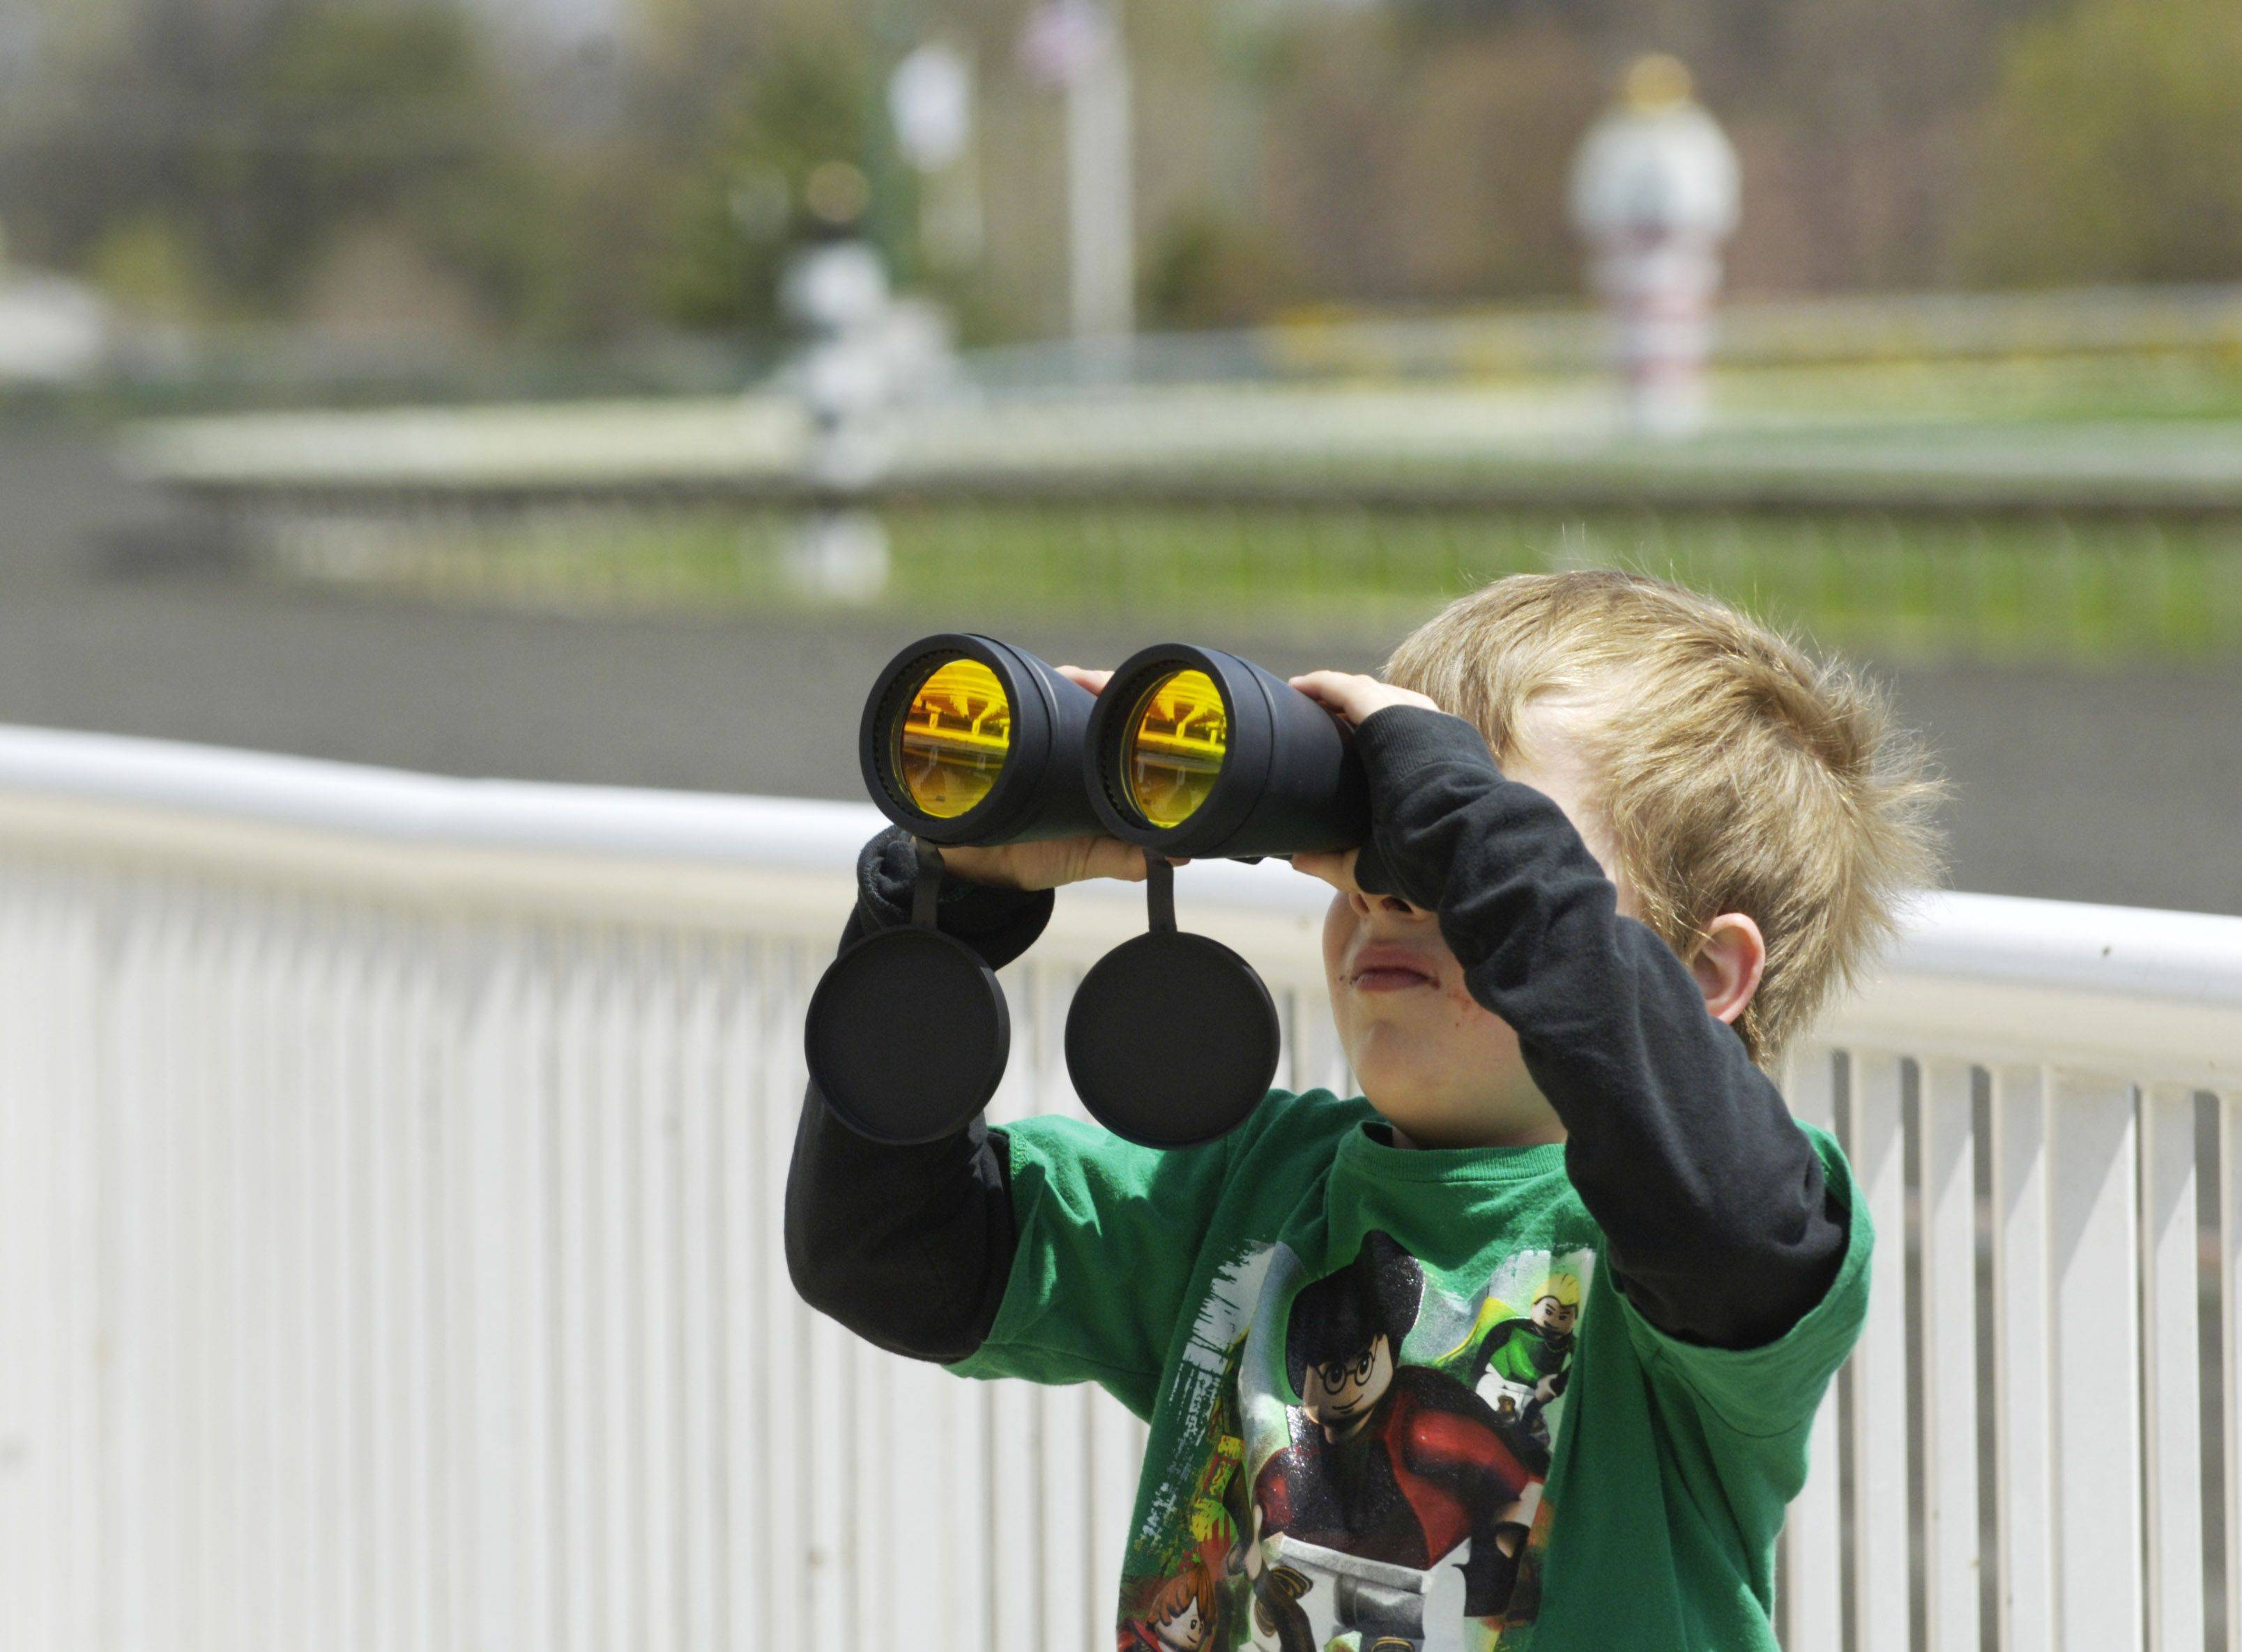 Jacob Ackerley, 5, of South Bend, Ind., tries out his dad's binoculars prior to the start of racing.